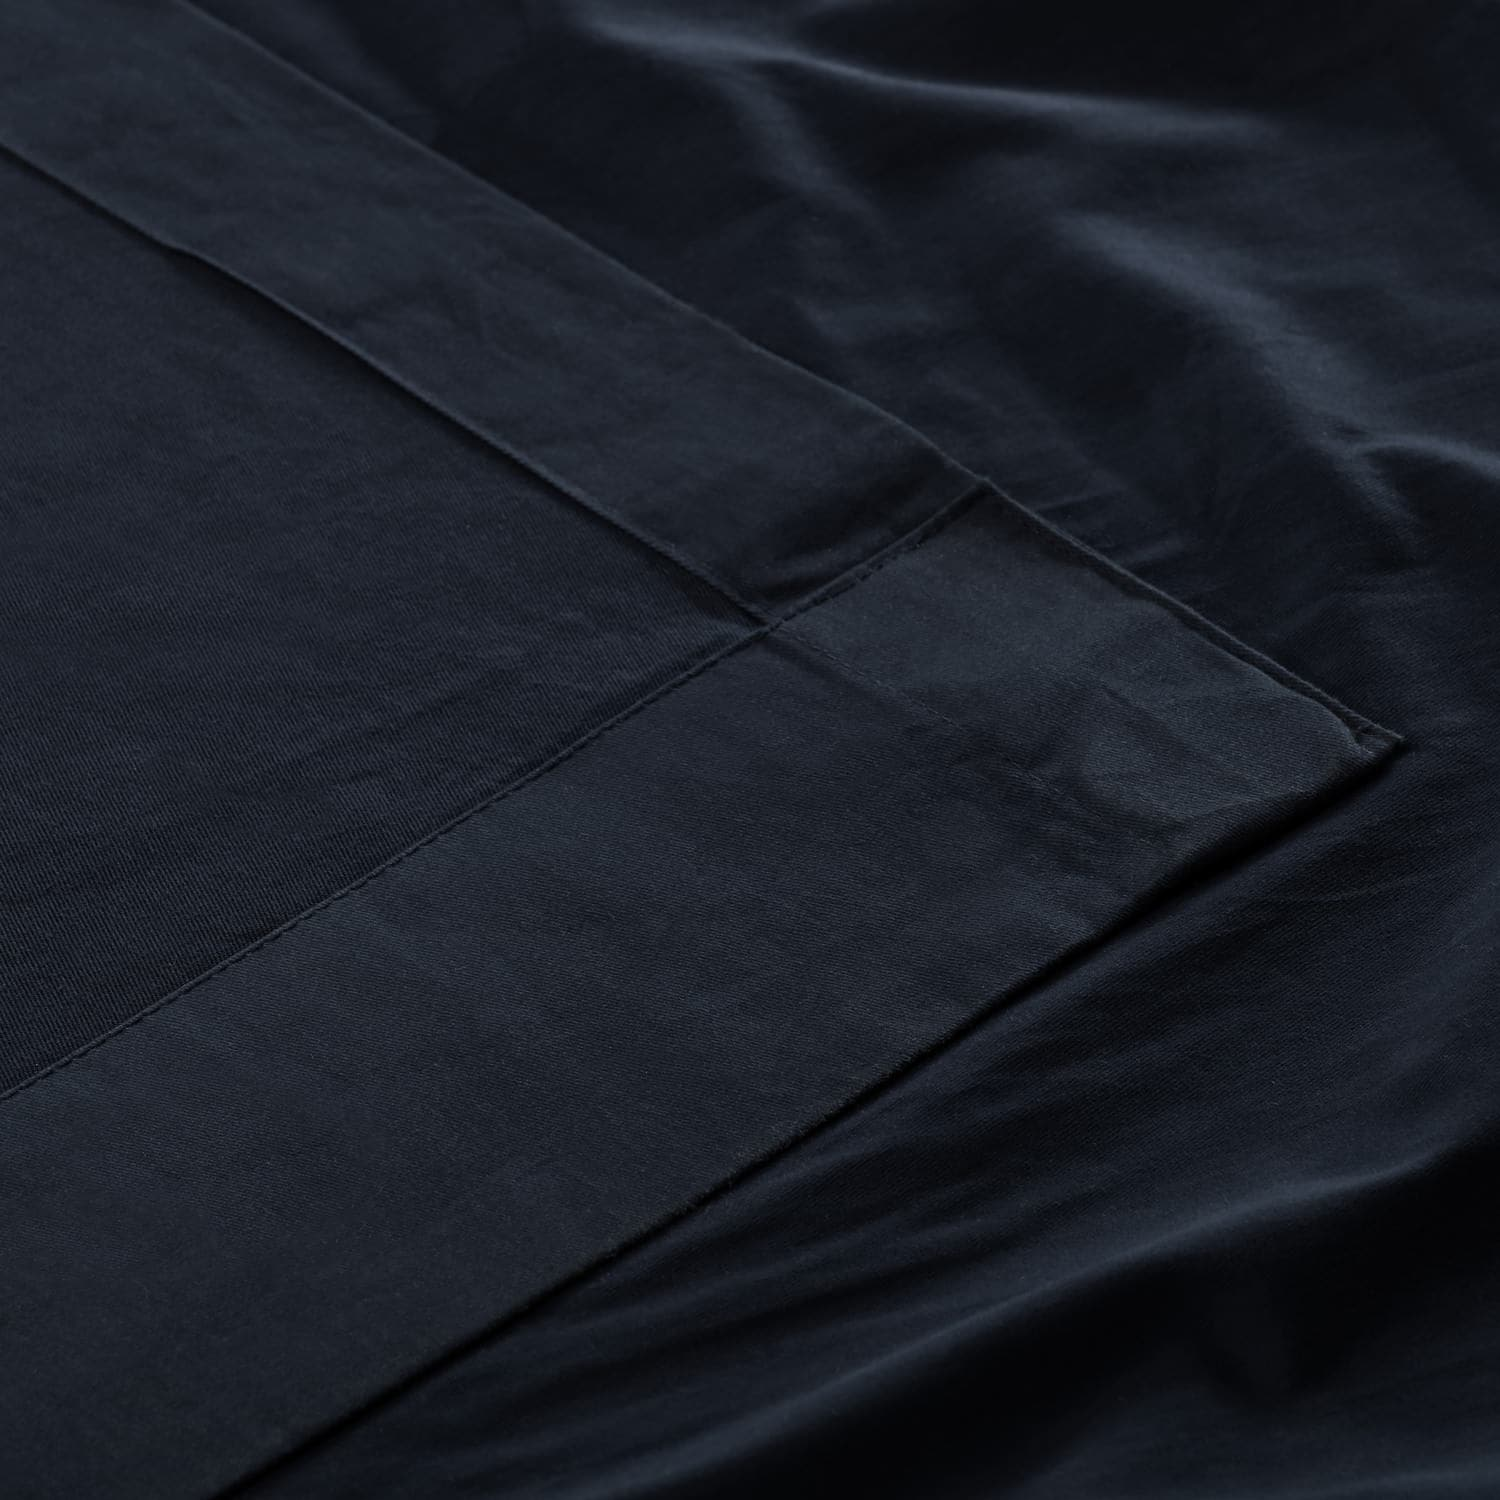 Polo Navy Solid Cotton Deluxe Tab Top Curtain